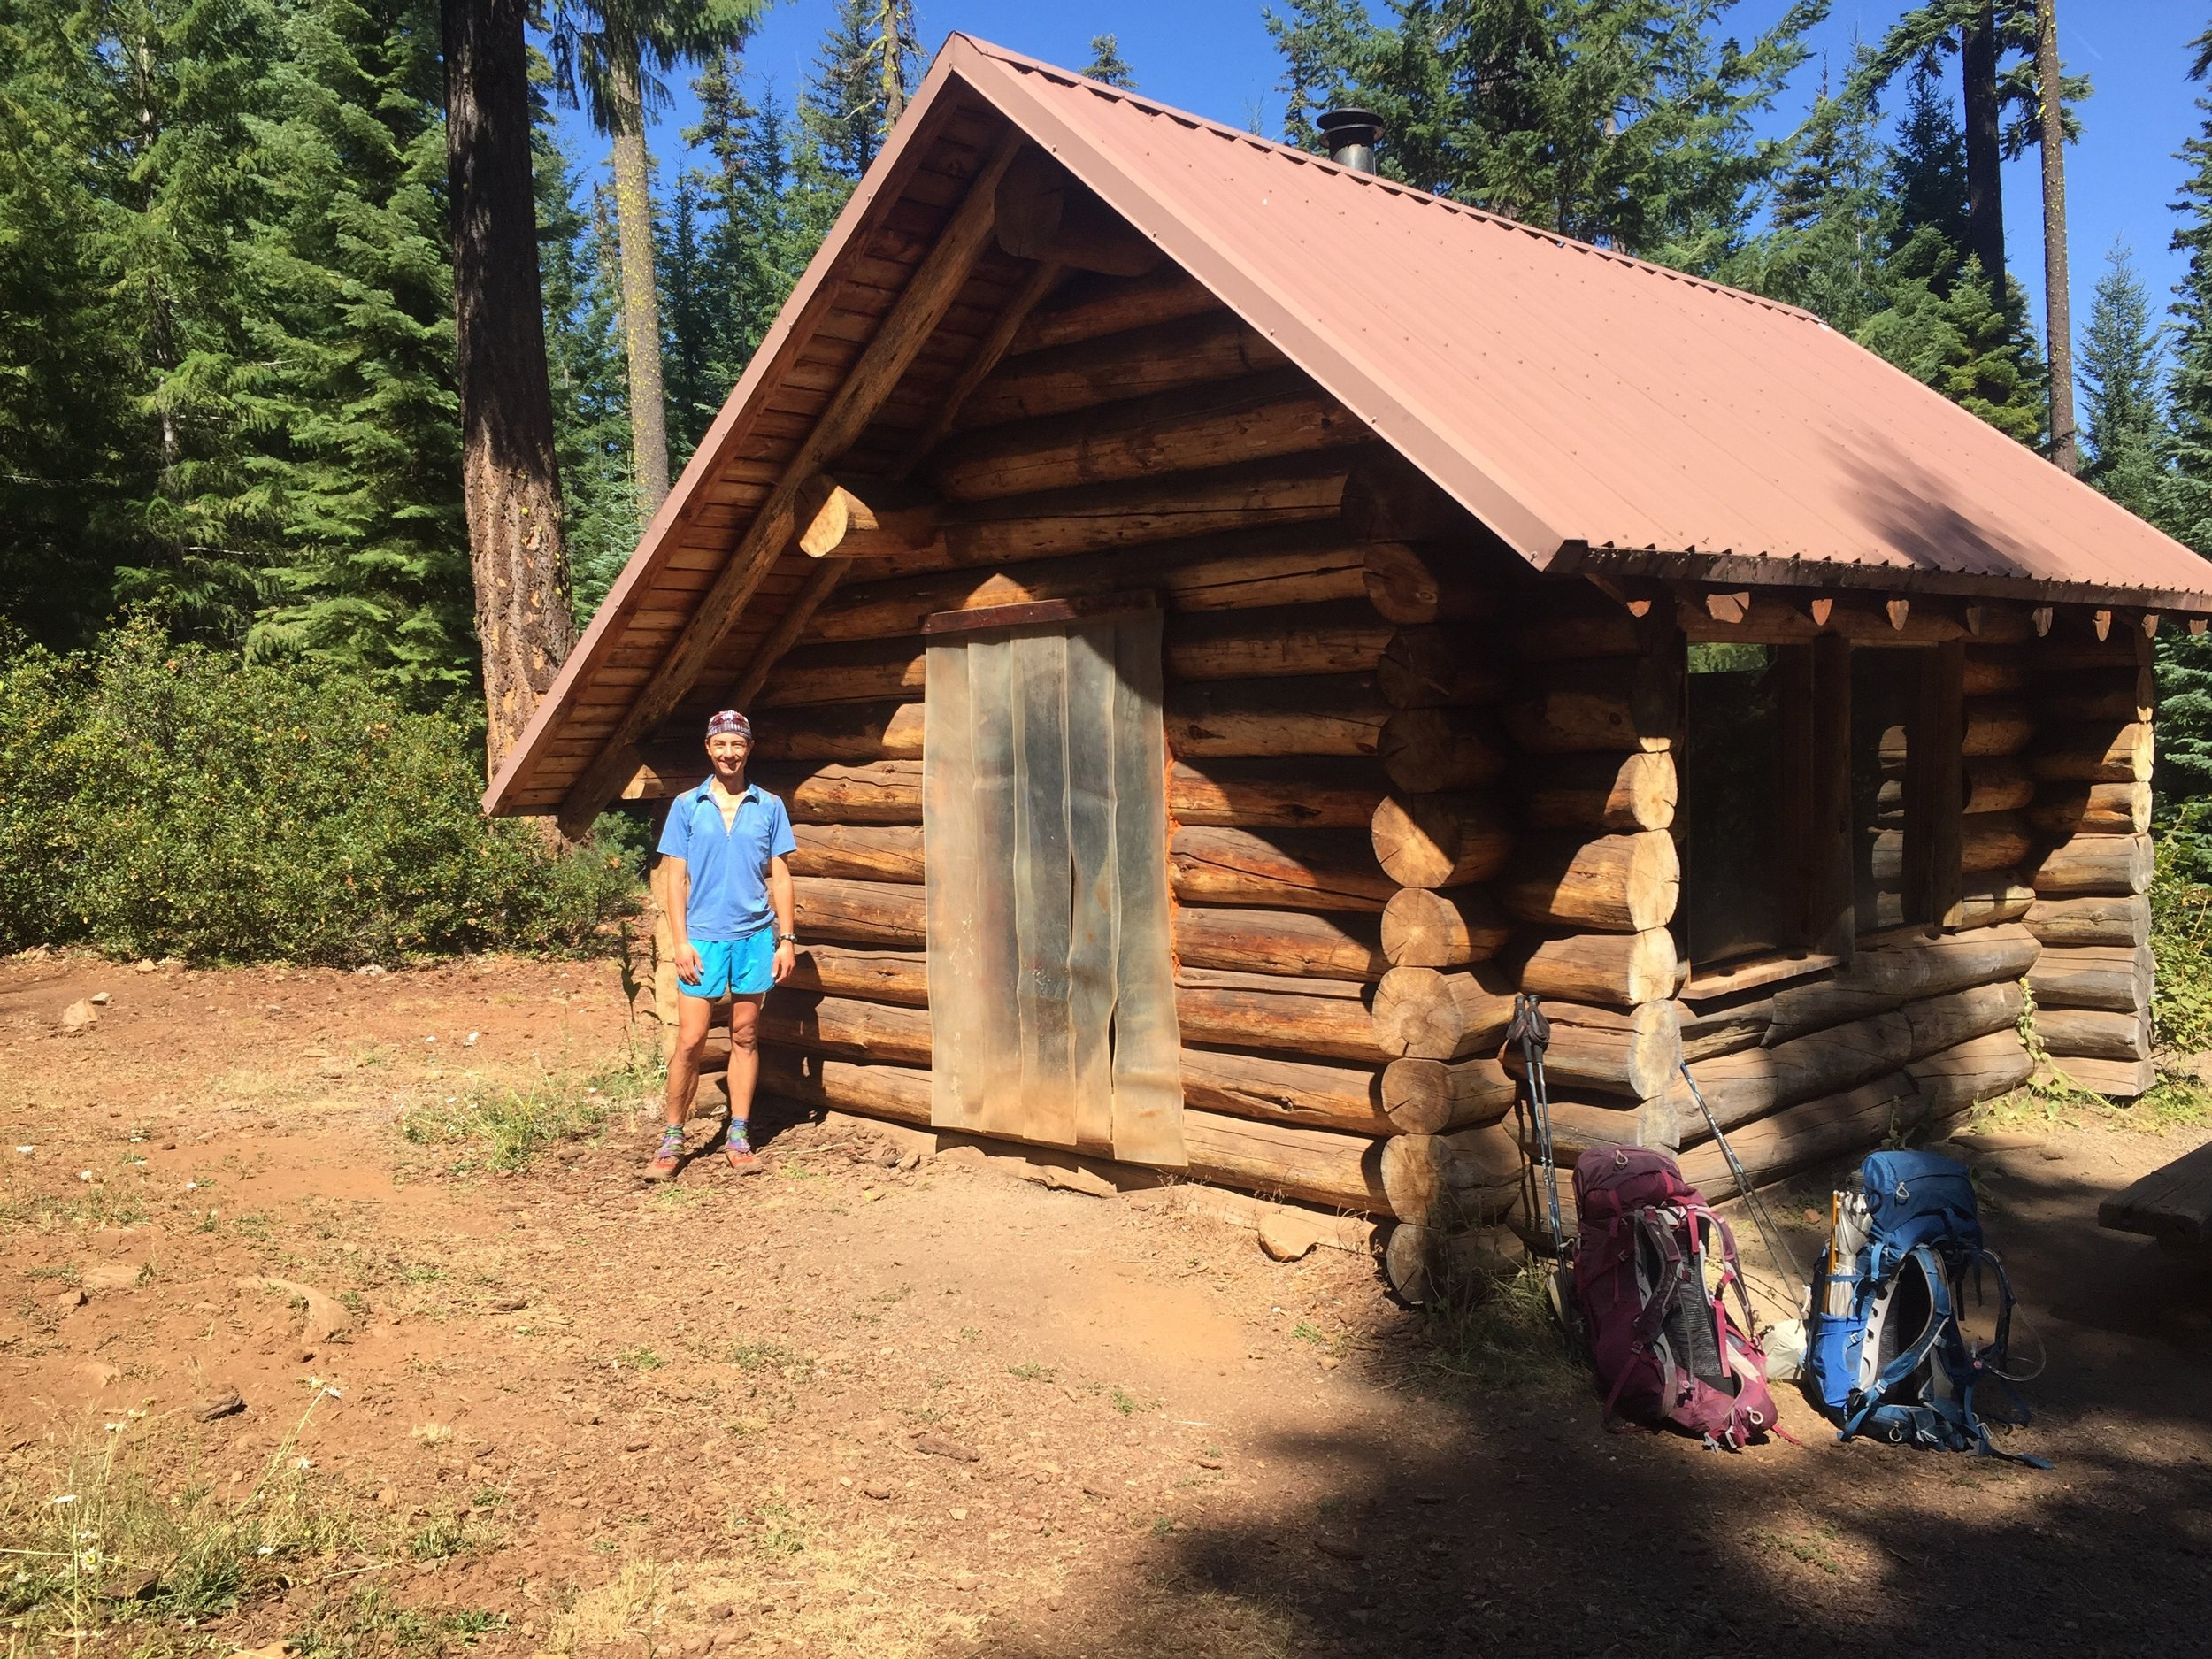 South Brown Mountain Shelter, an oasis of trail magic on Day 47